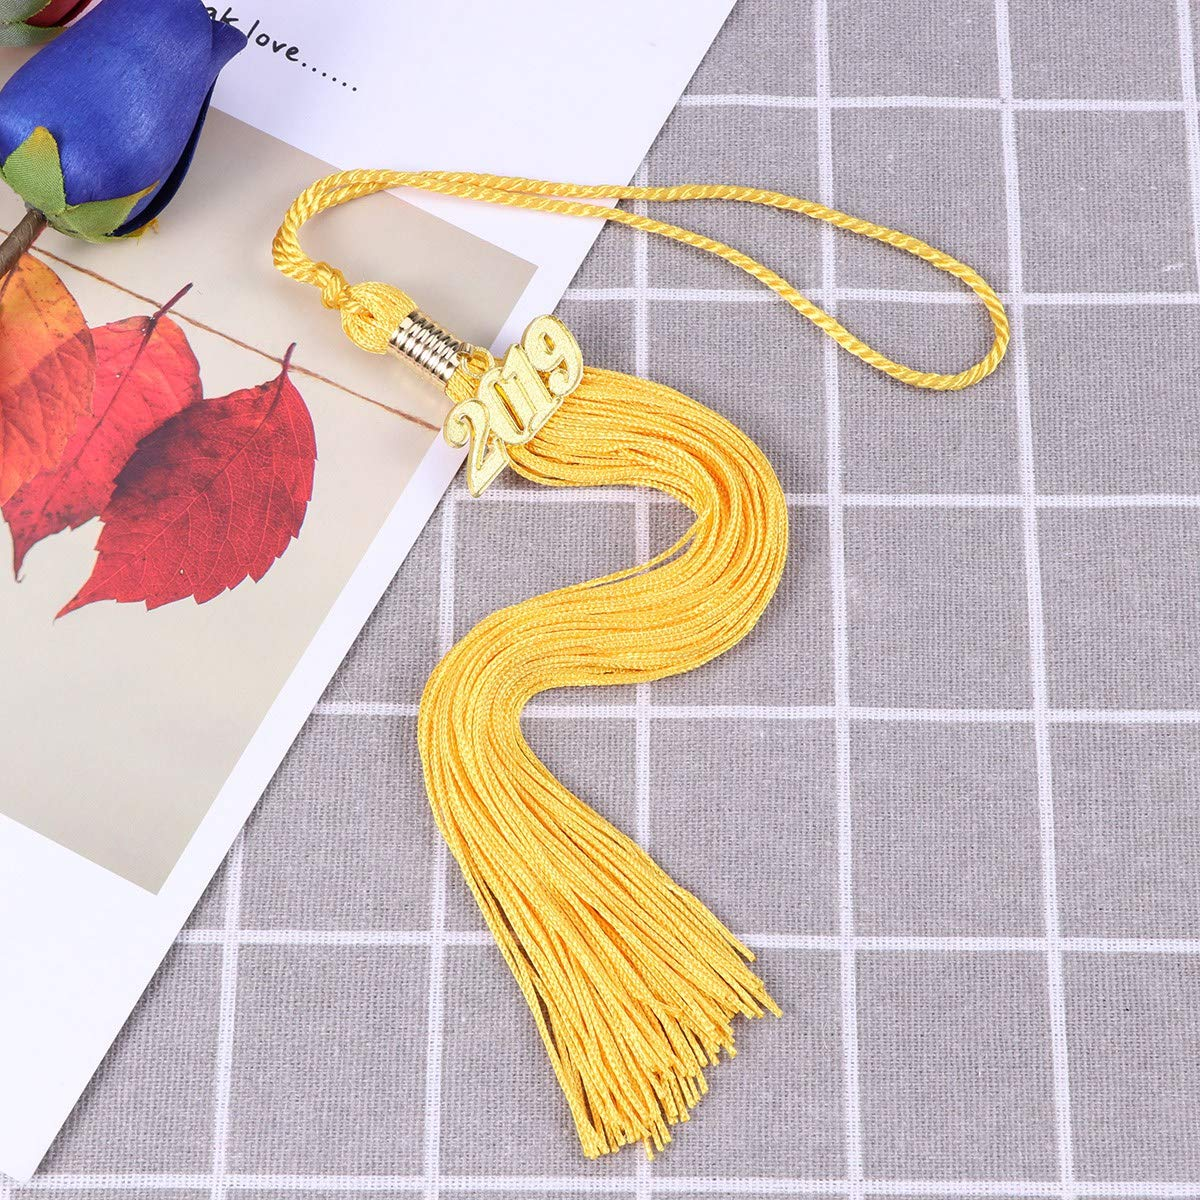 Yellow TOYANDONA Tassel 2019 Graduation Hat Number Craft Tassel Hanging Pendent for Bachelor Master Doctor Cap